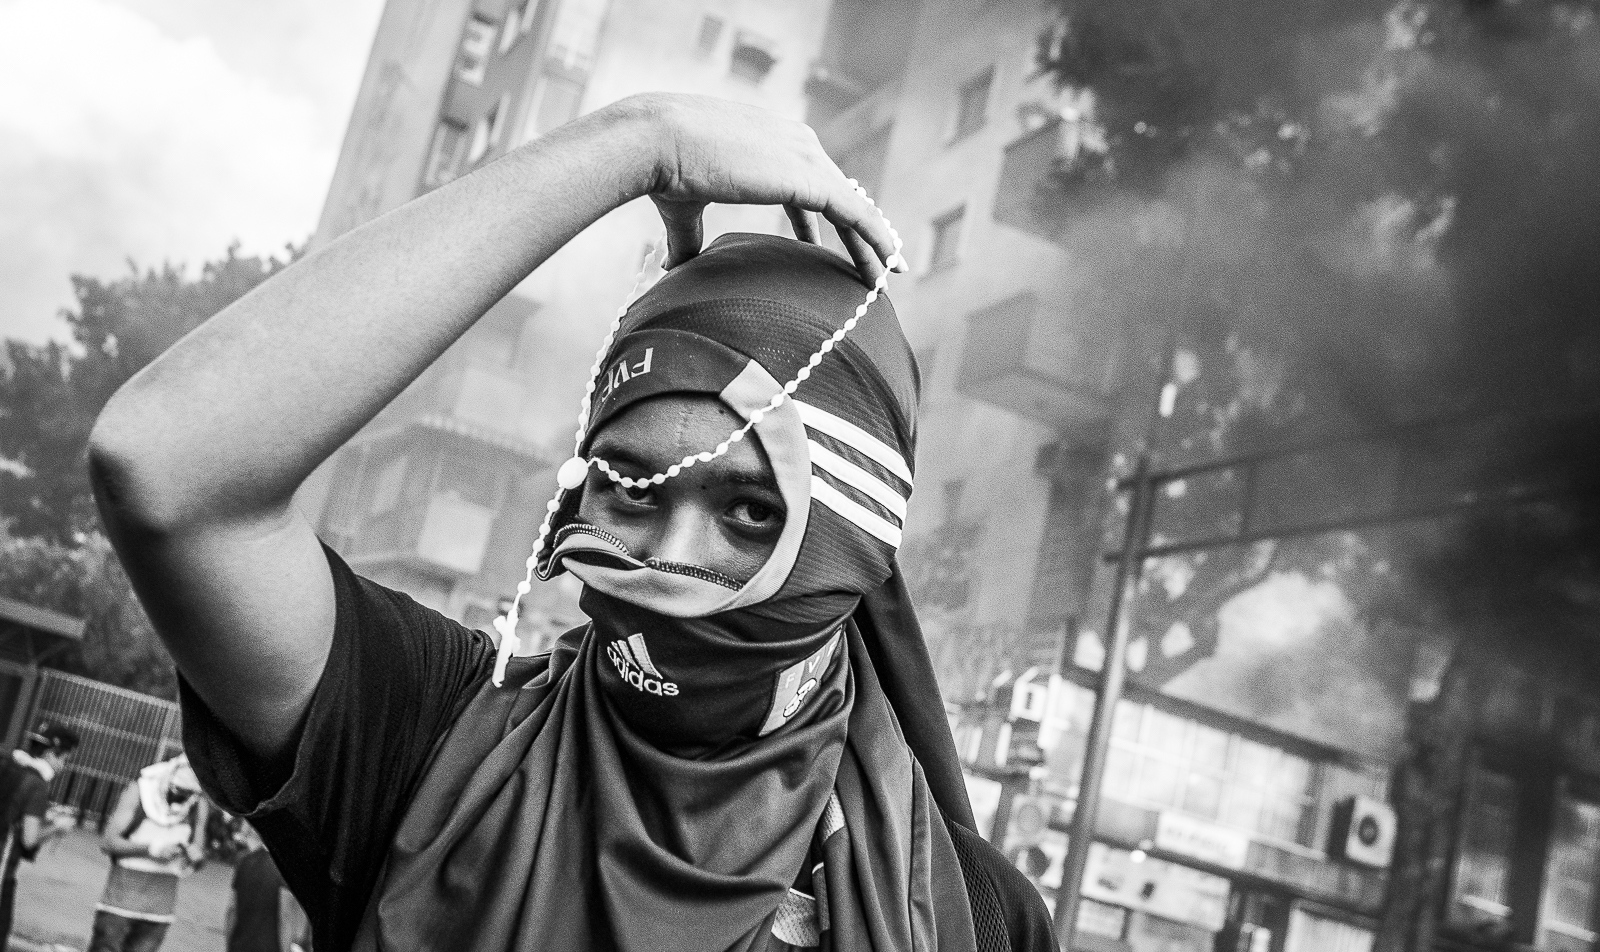 A student holds a rosary during the protests in Altamira, Caracas. The demontrations and confronts started on February 12th, and caused 42 dead, hundreds of injured and 1030 detained during the two month protests against the Government of President Nicolas Maduro.